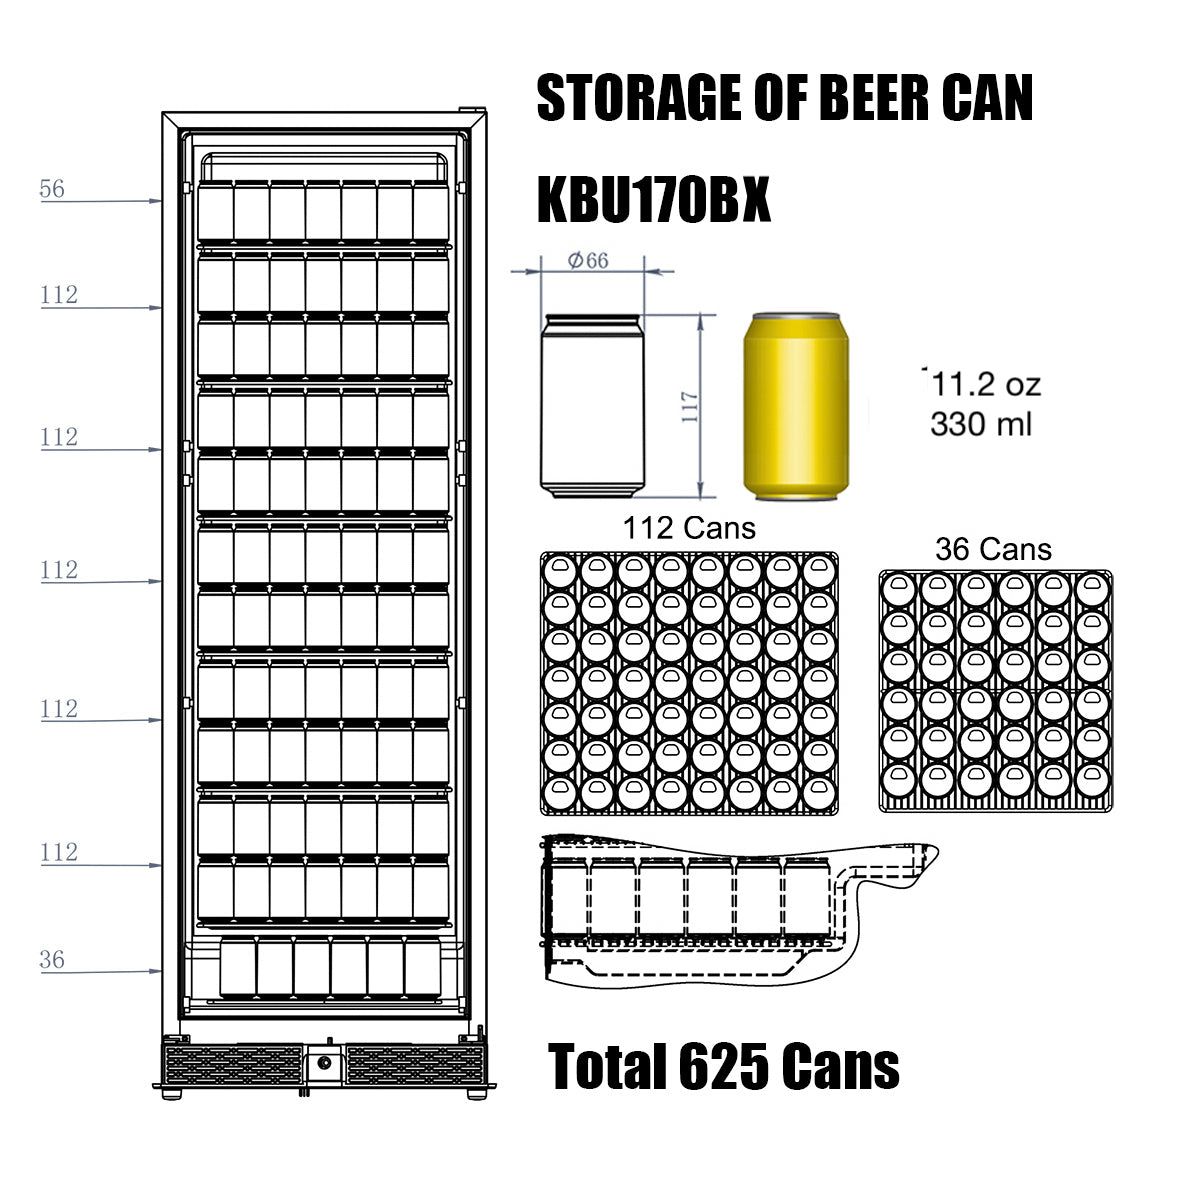 KBU170B Storage of Beer Can